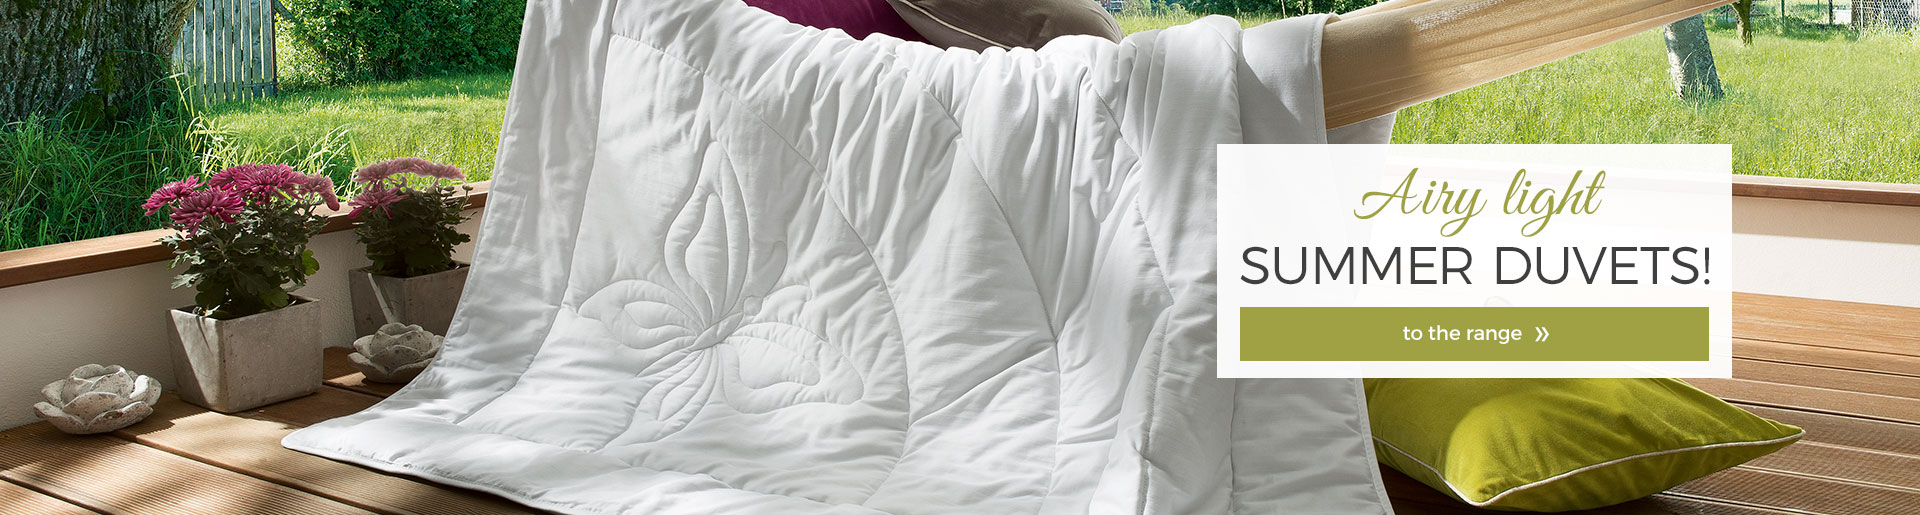 Airy light summer duvets!